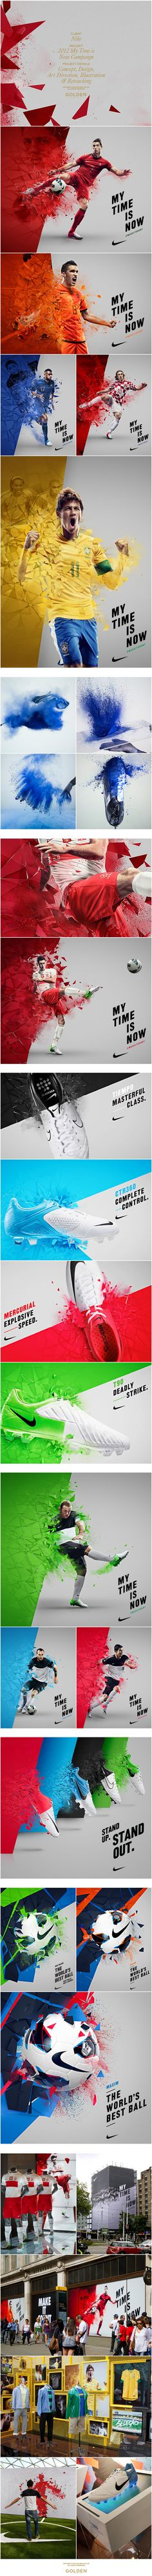 Nike 2012 My Time Is Now Campaign | Concept, art direction and illustration by Golden. Photography by Dan Tobin-Smith. Player retouching by Happy Finish.